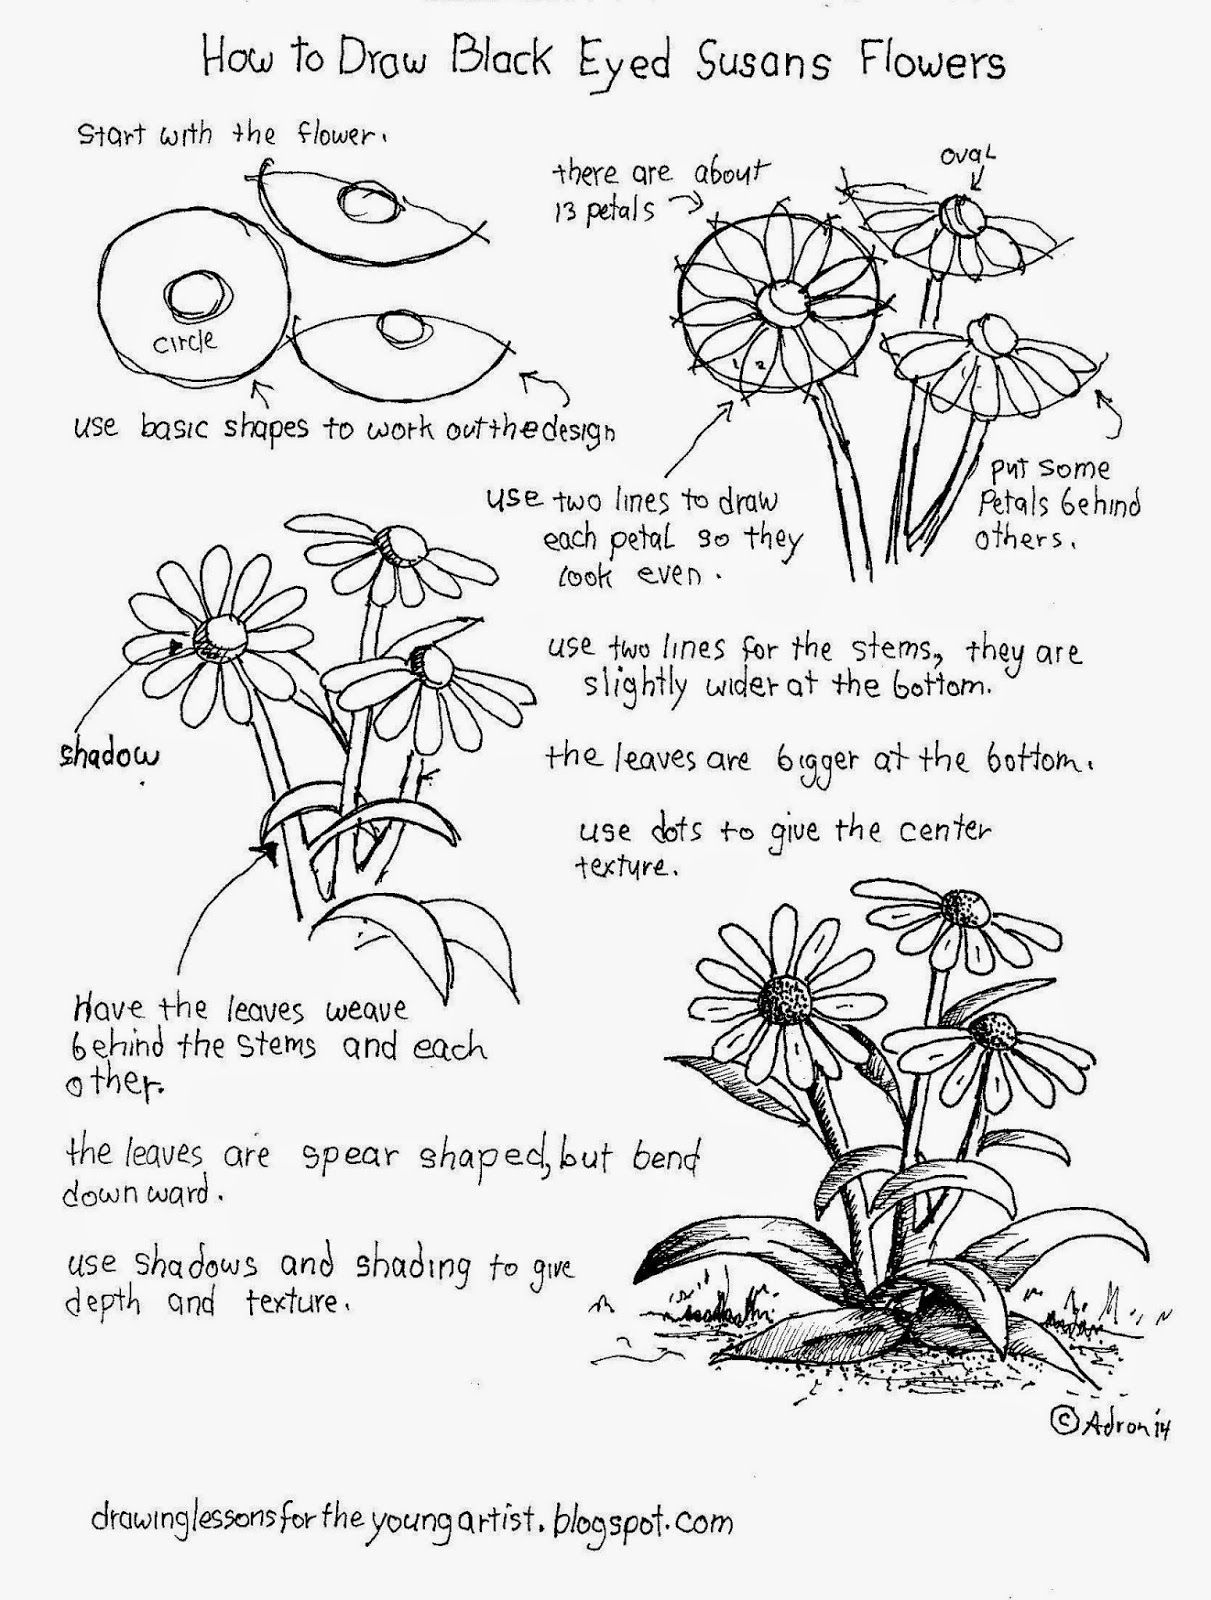 How To Draw Black Eyed Susan Flowers, Free Worksheet